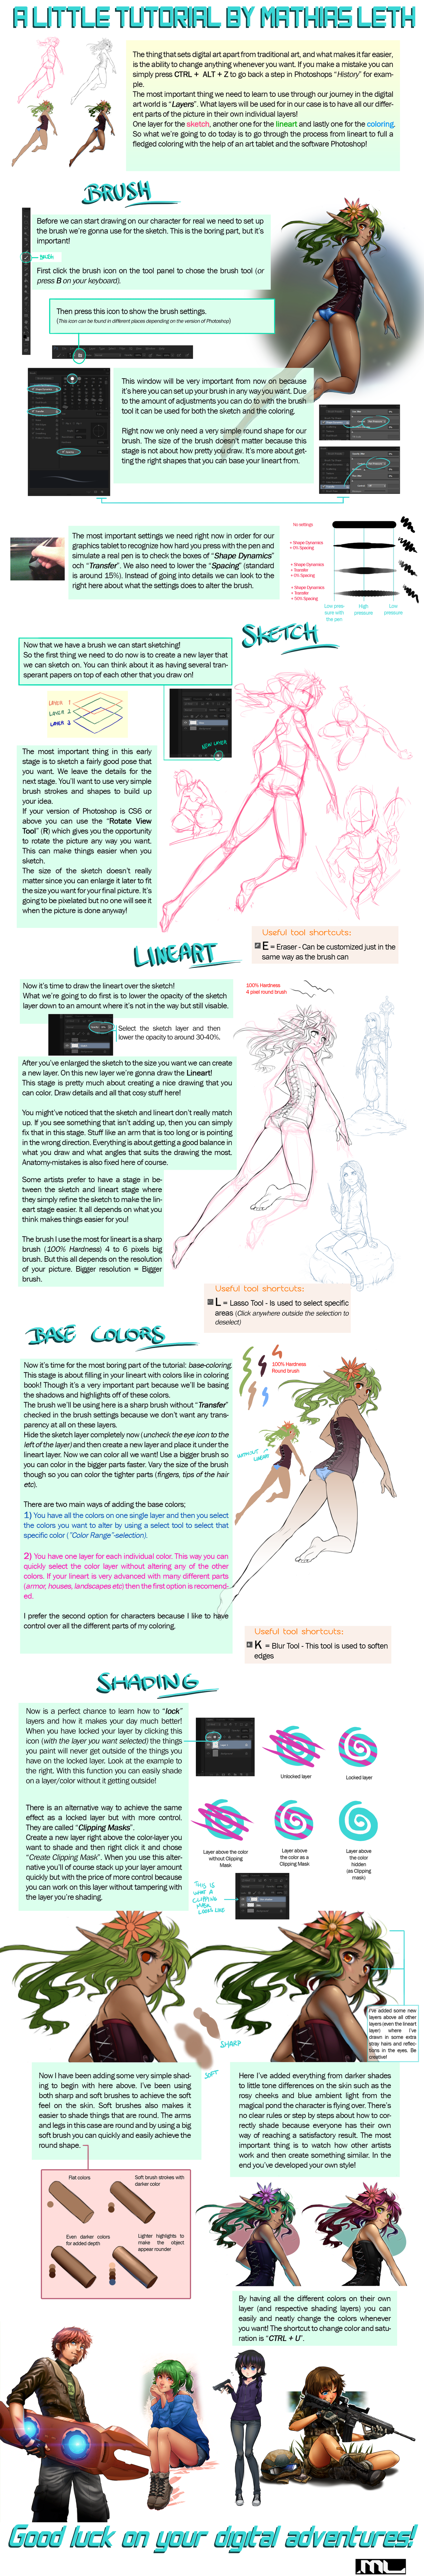 MLeth's Coloring Tutorial (Photoshop) by MLeth